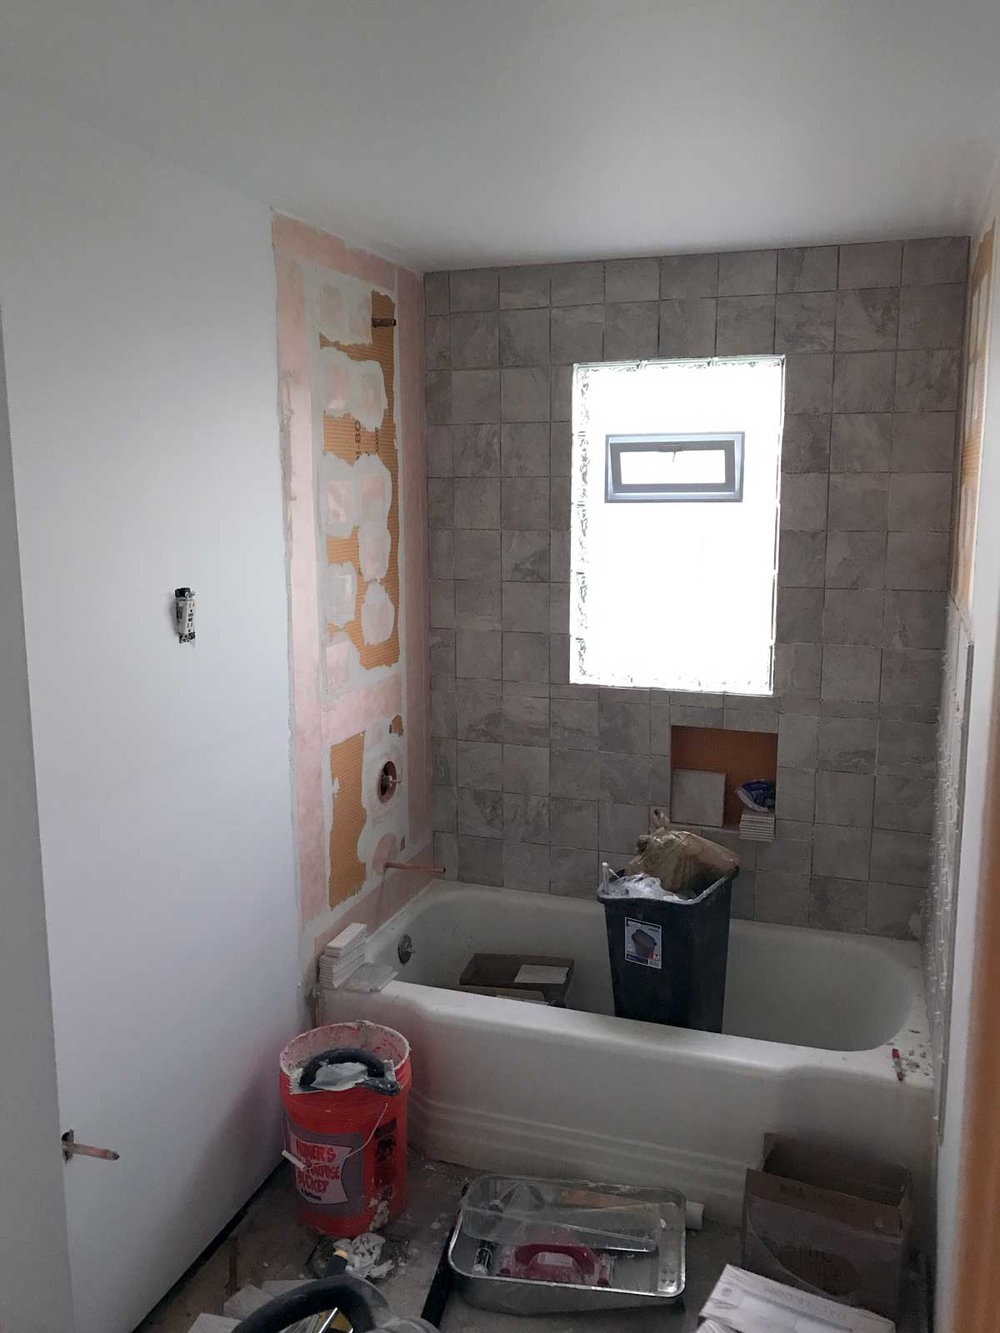 15-Day-Bathroom-Renovation-22.jpg